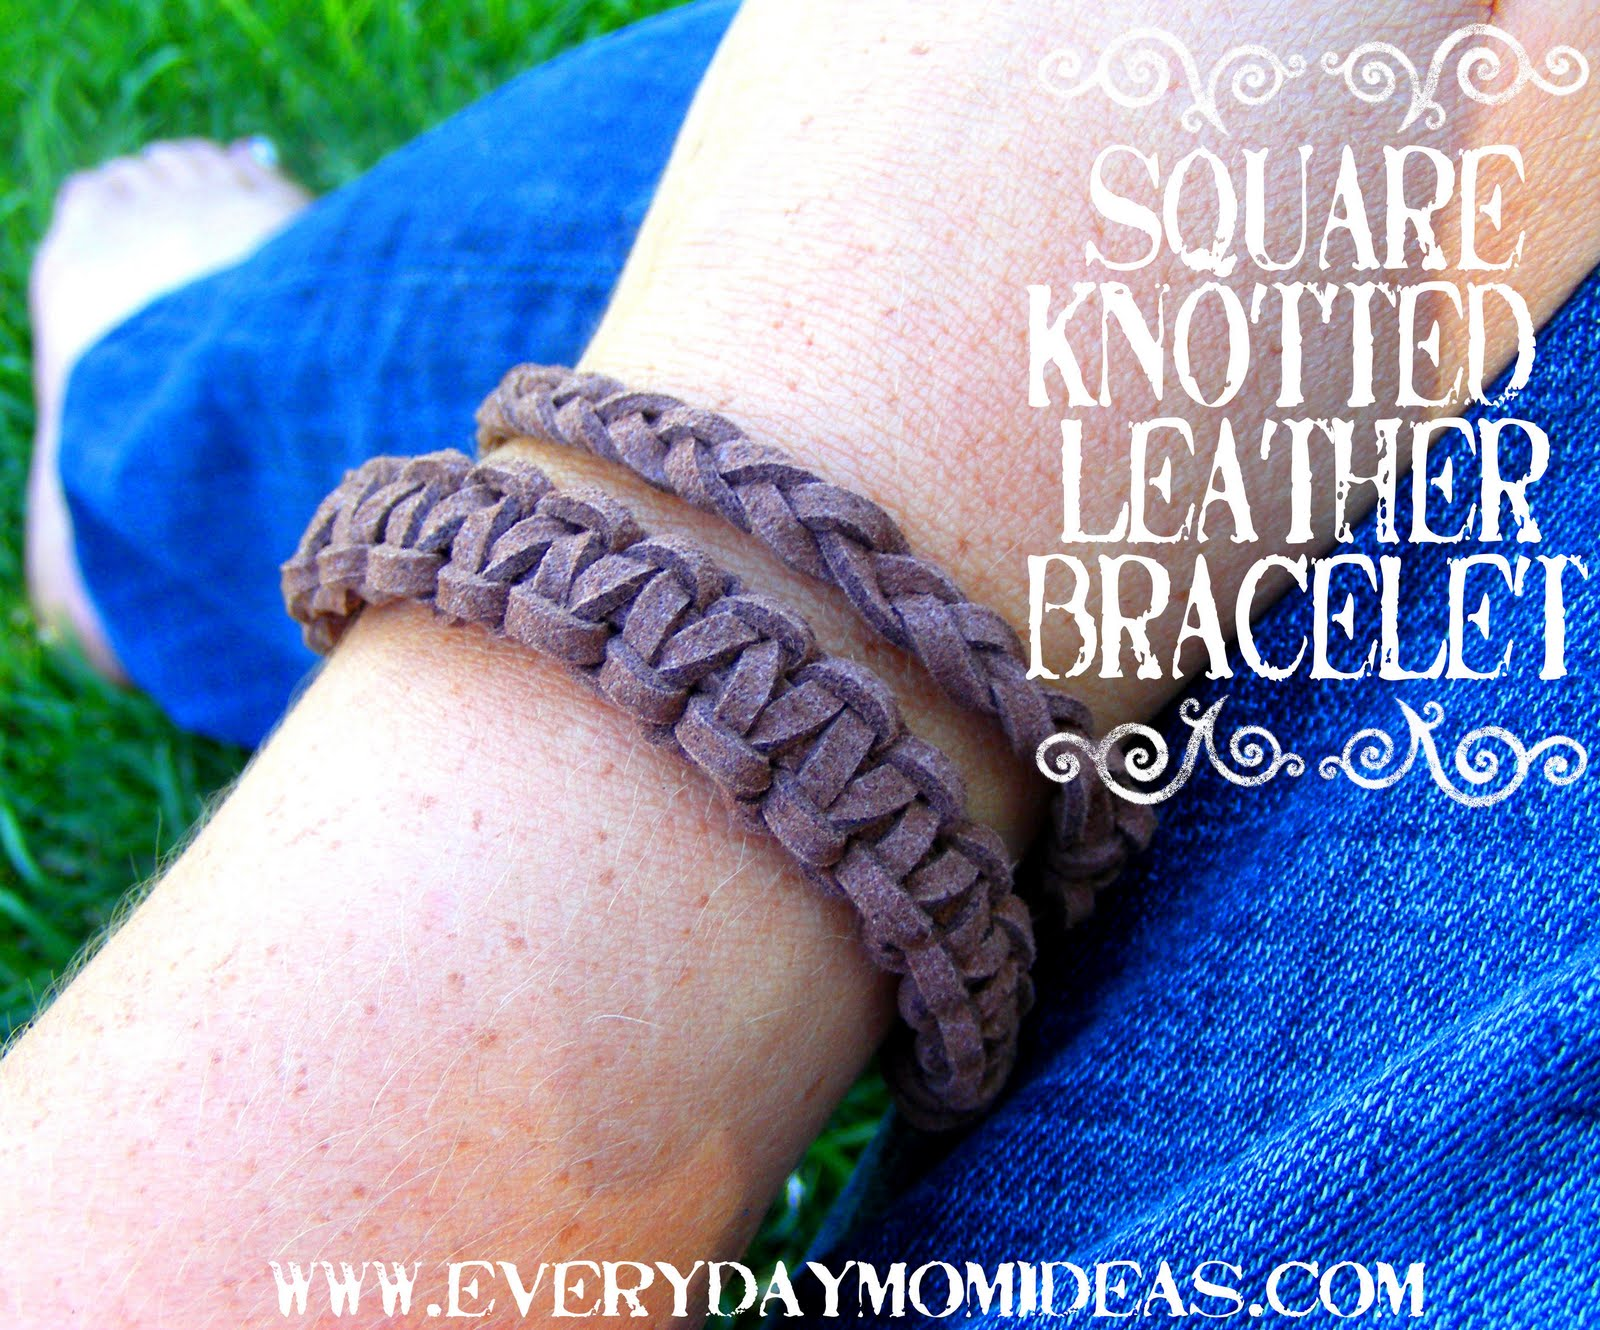 Square Knotted Leather Bracelet Tutorial Everyday Mom Ideas